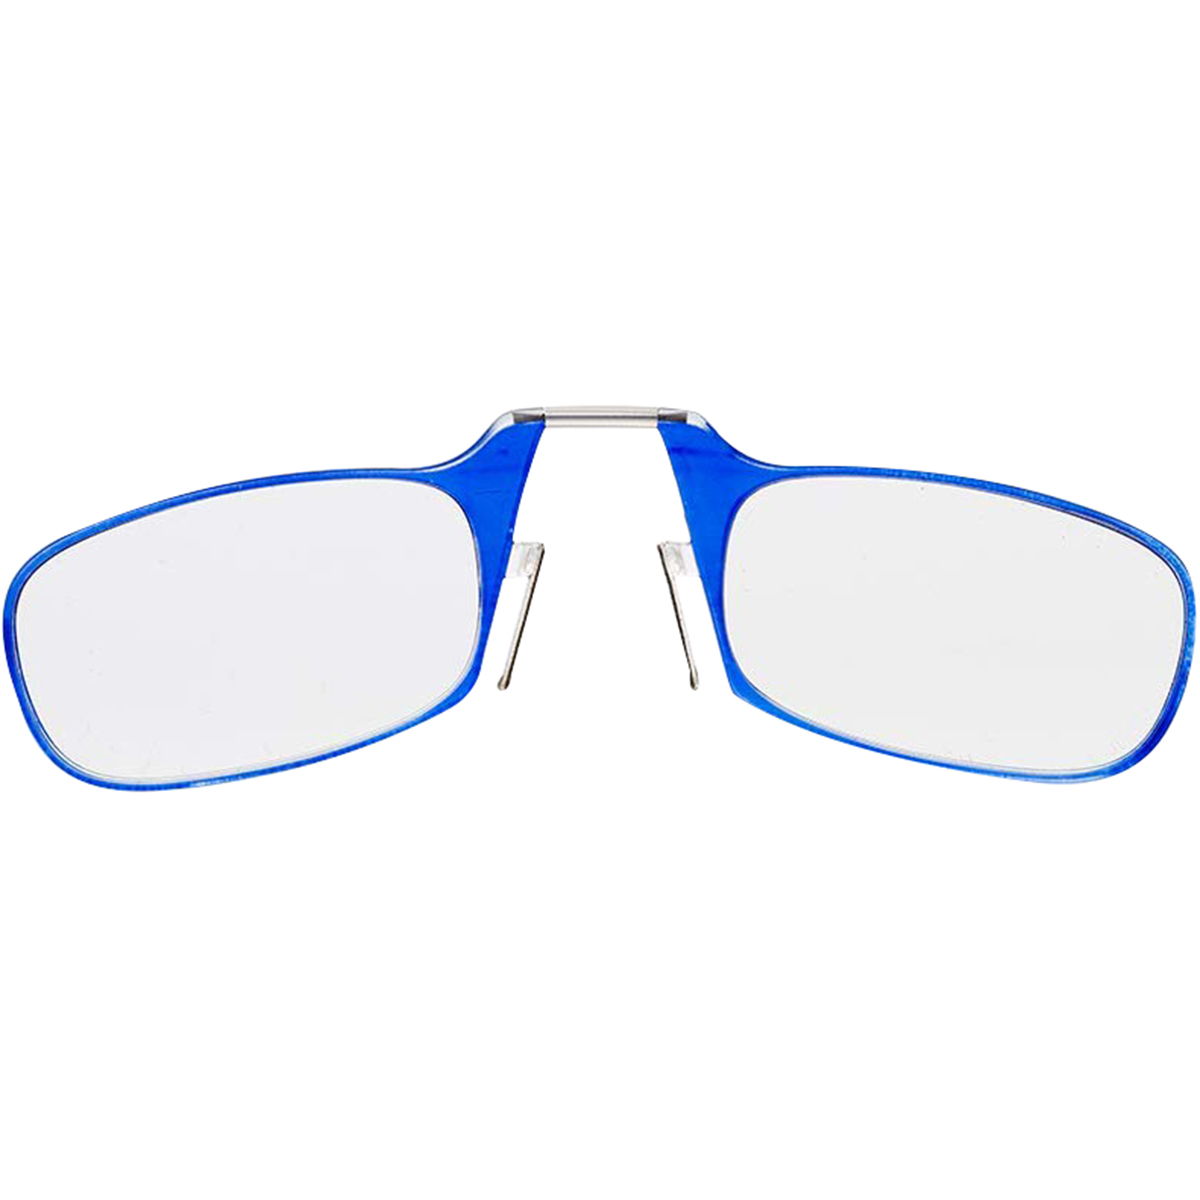 ThinOptics-Secure-Fit-Armless-Ultralight-Reading-Glasses-with-Universal-Pod-Case thumbnail 14